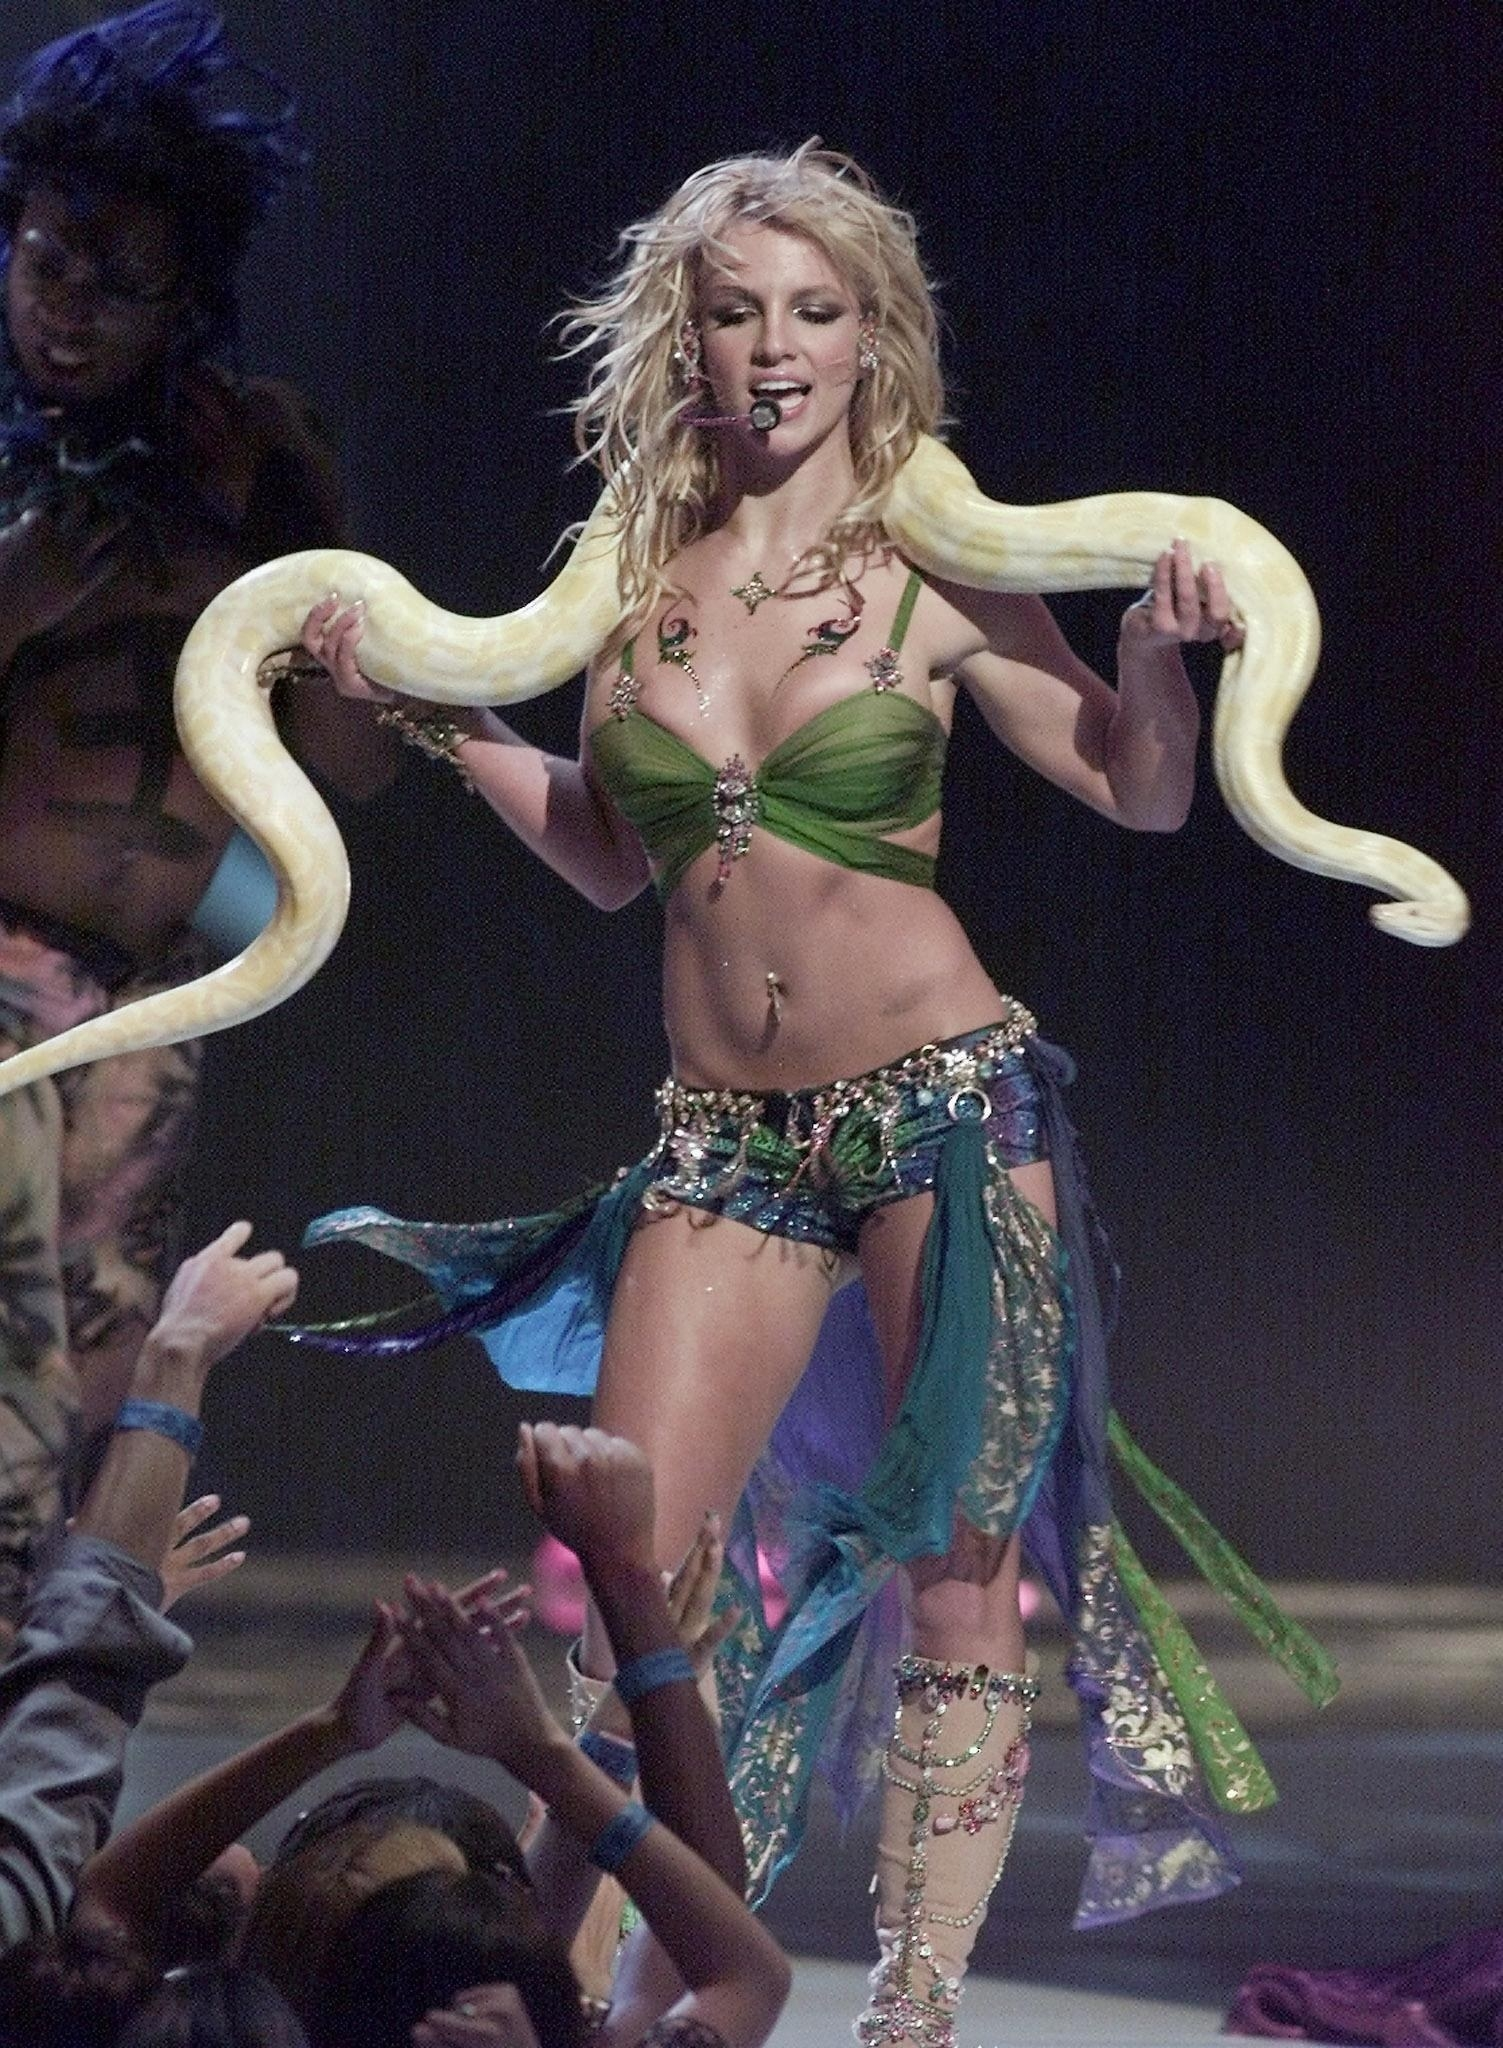 Britney Spears performing at the 2001 Video Music Awards